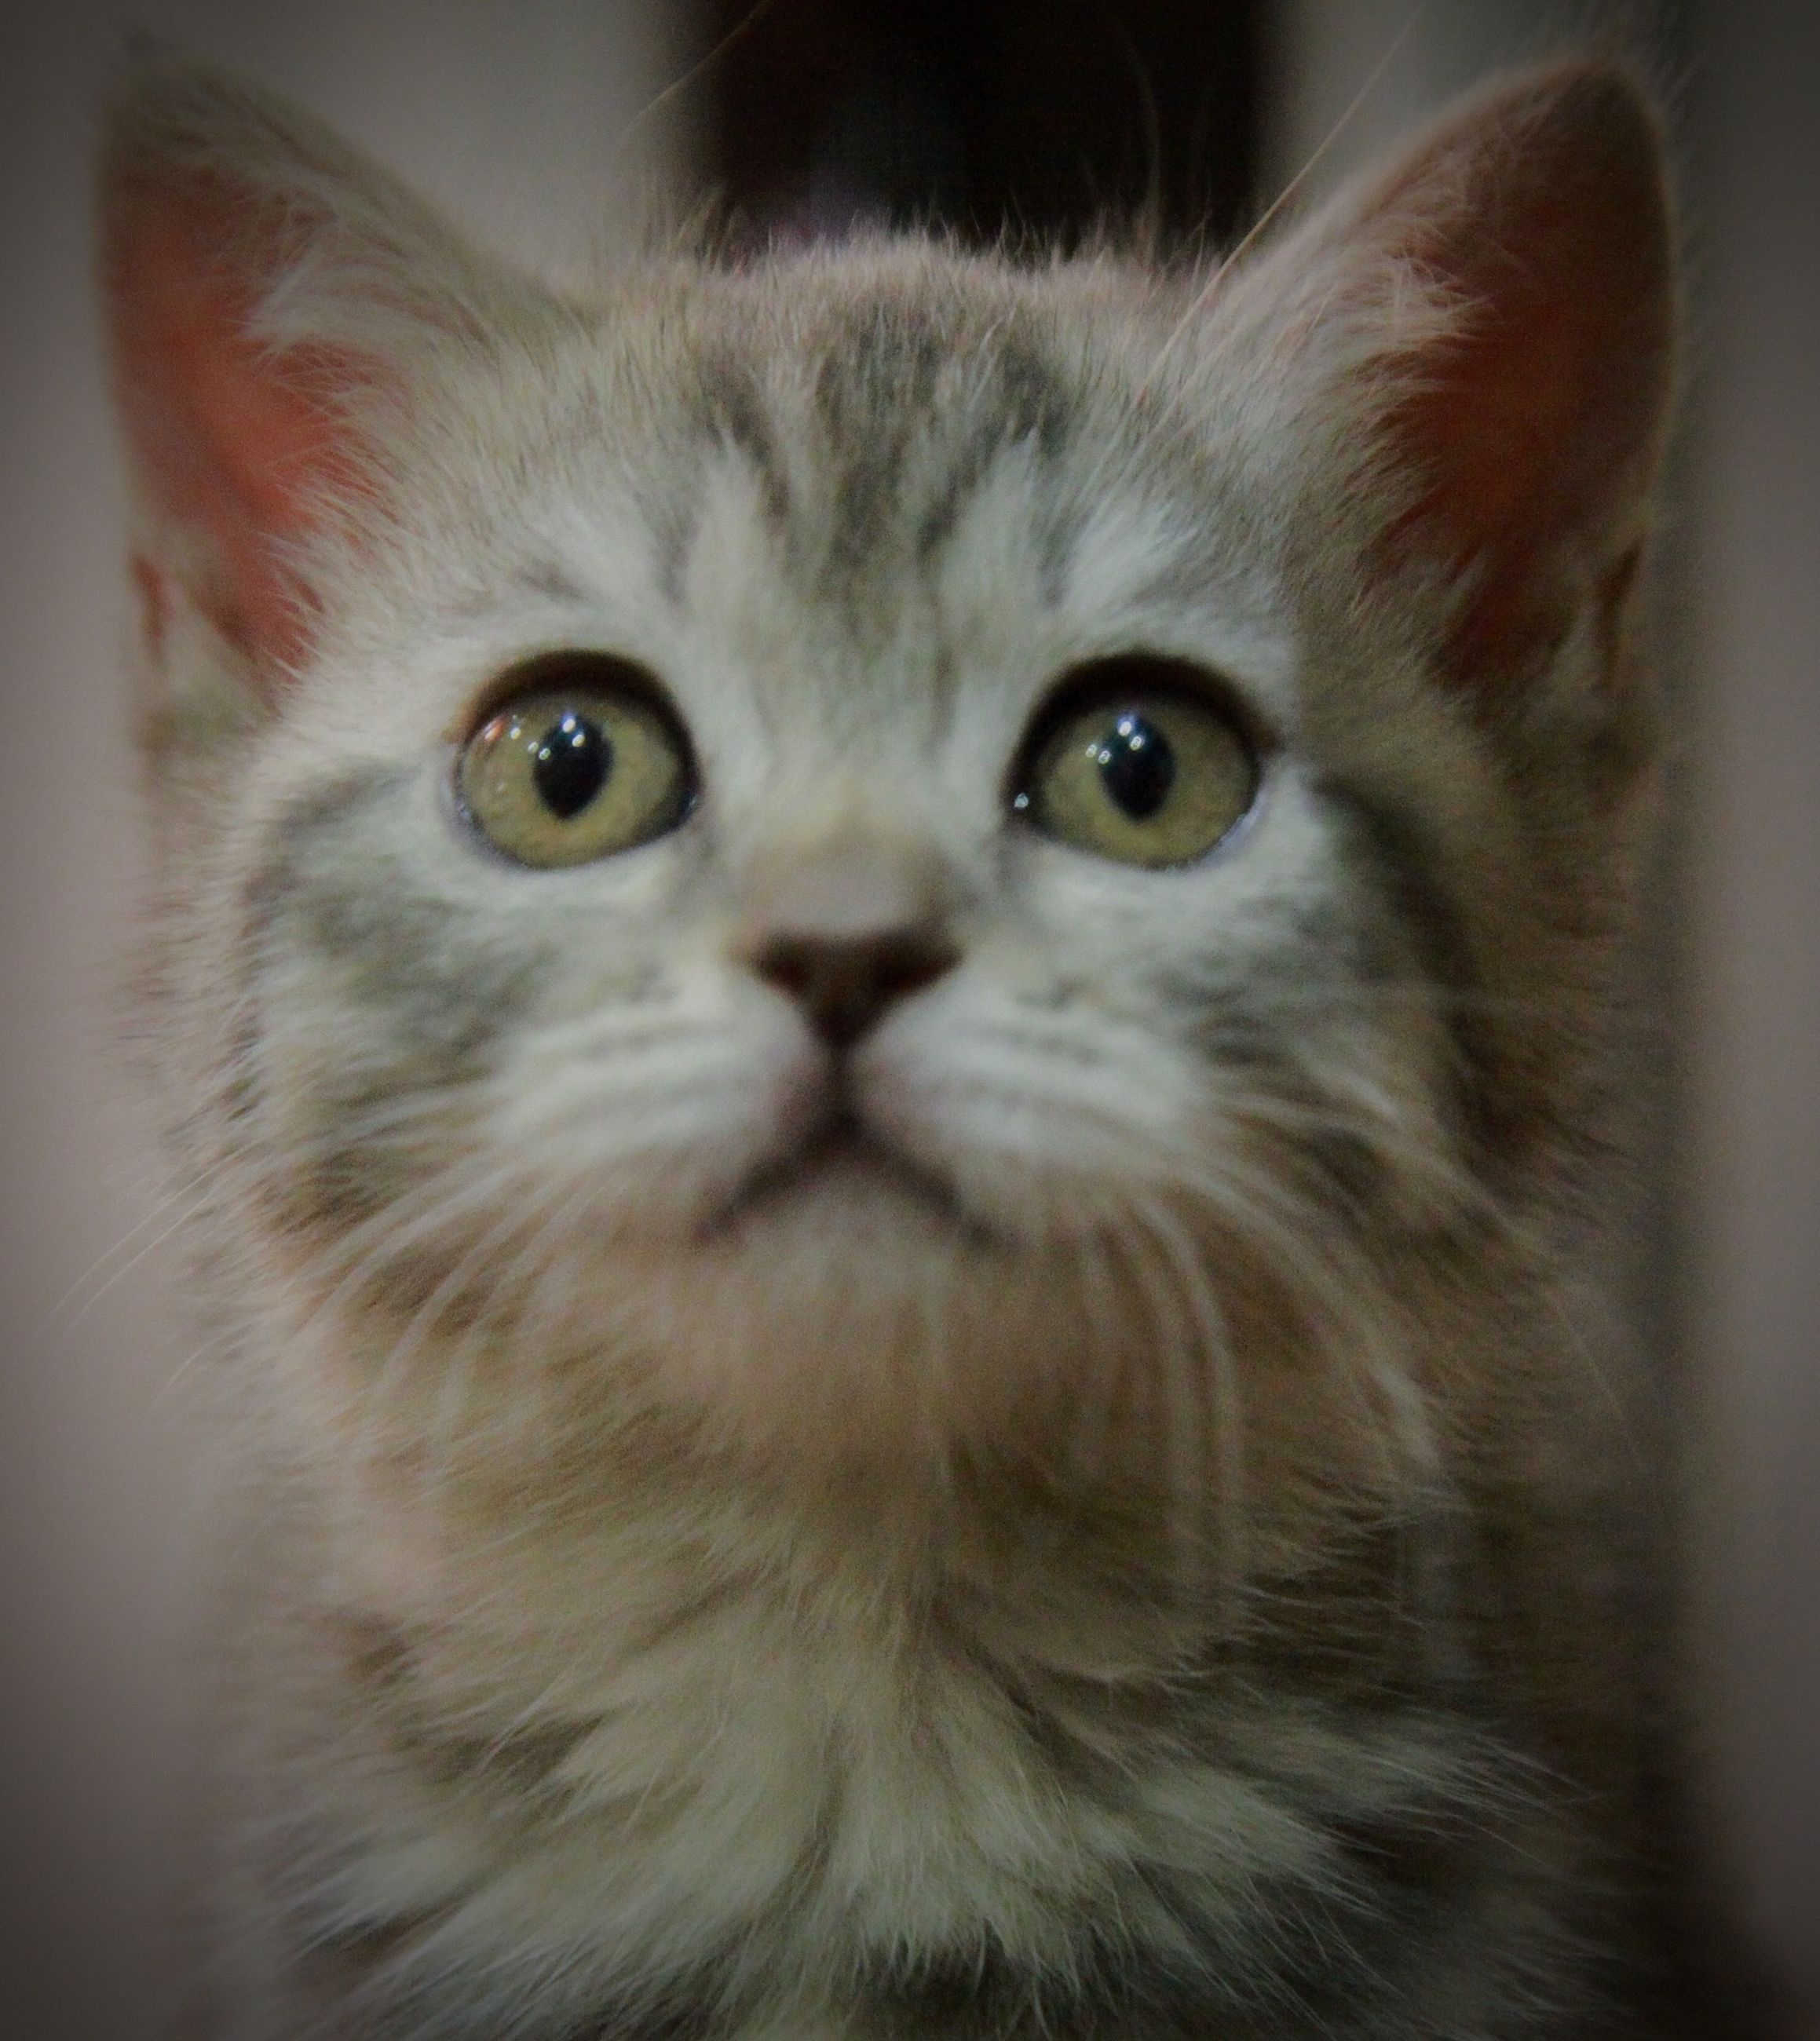 animal themes, one animal, domestic cat, pets, cat, portrait, looking at camera, mammal, domestic animals, indoors, whisker, close-up, feline, animal head, animal eye, staring, alertness, front view, focus on foreground, no people